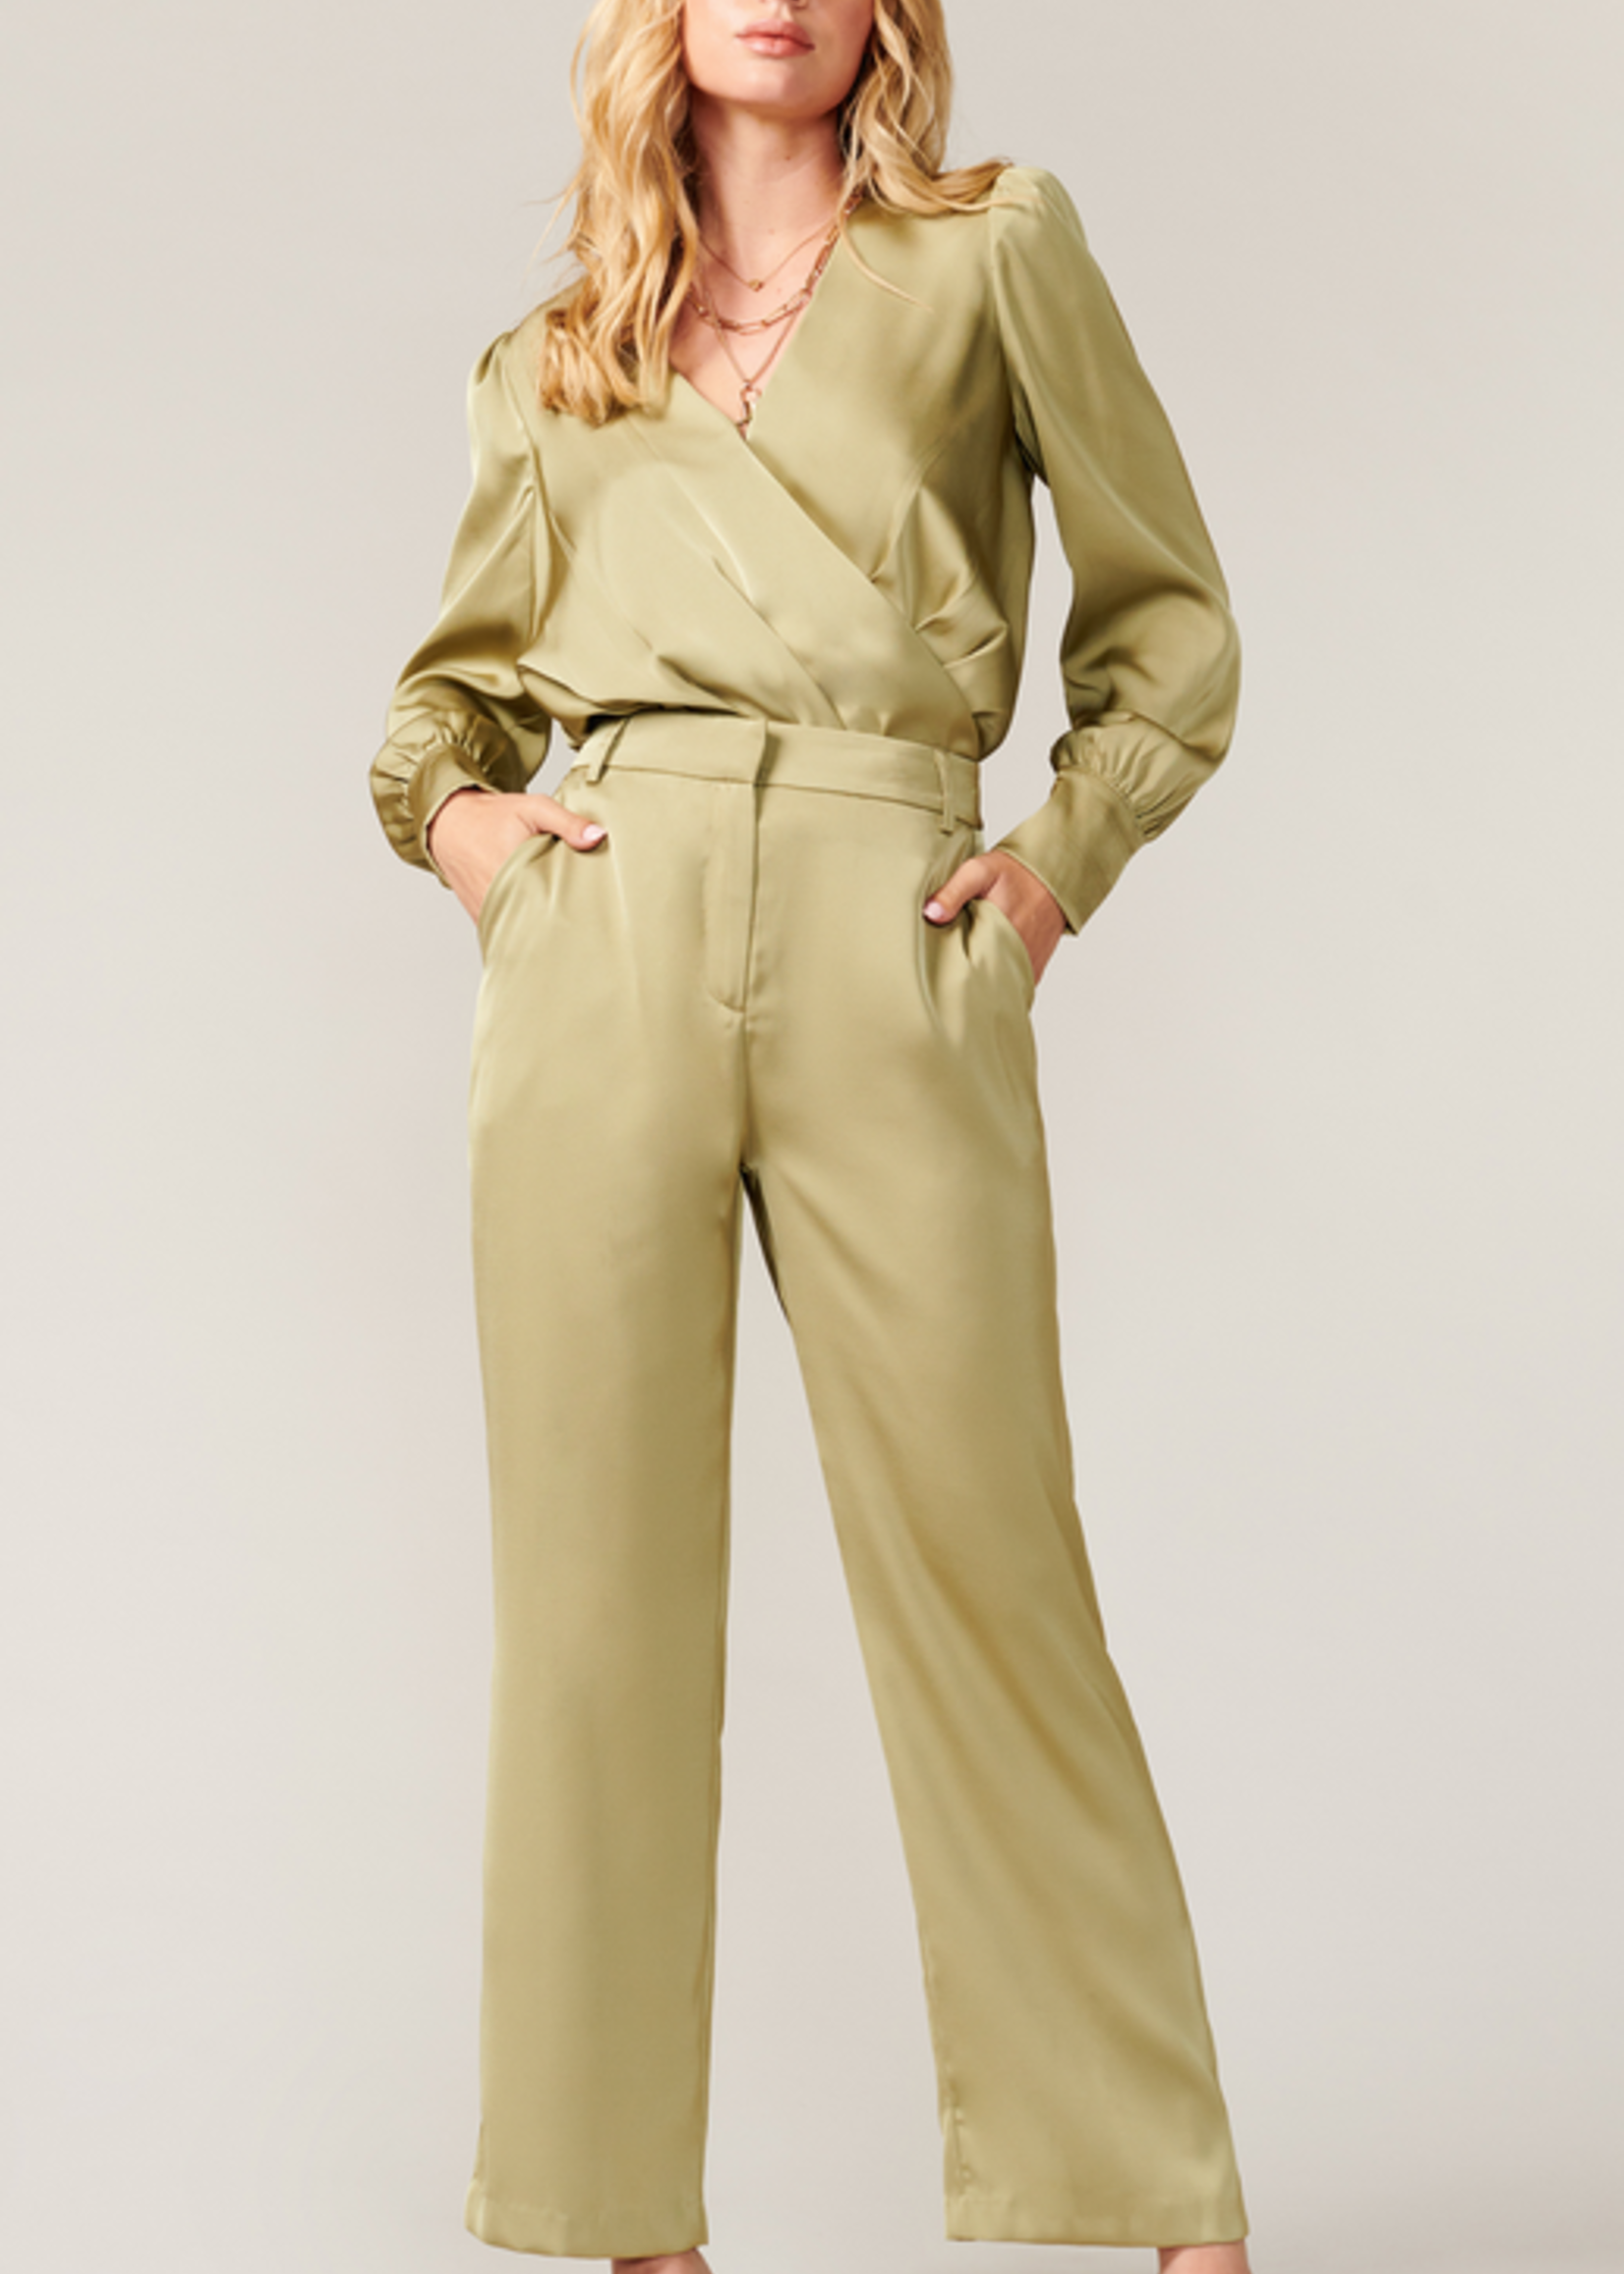 Elitaire Boutique Dylan Matte Sateen Pant in Sage